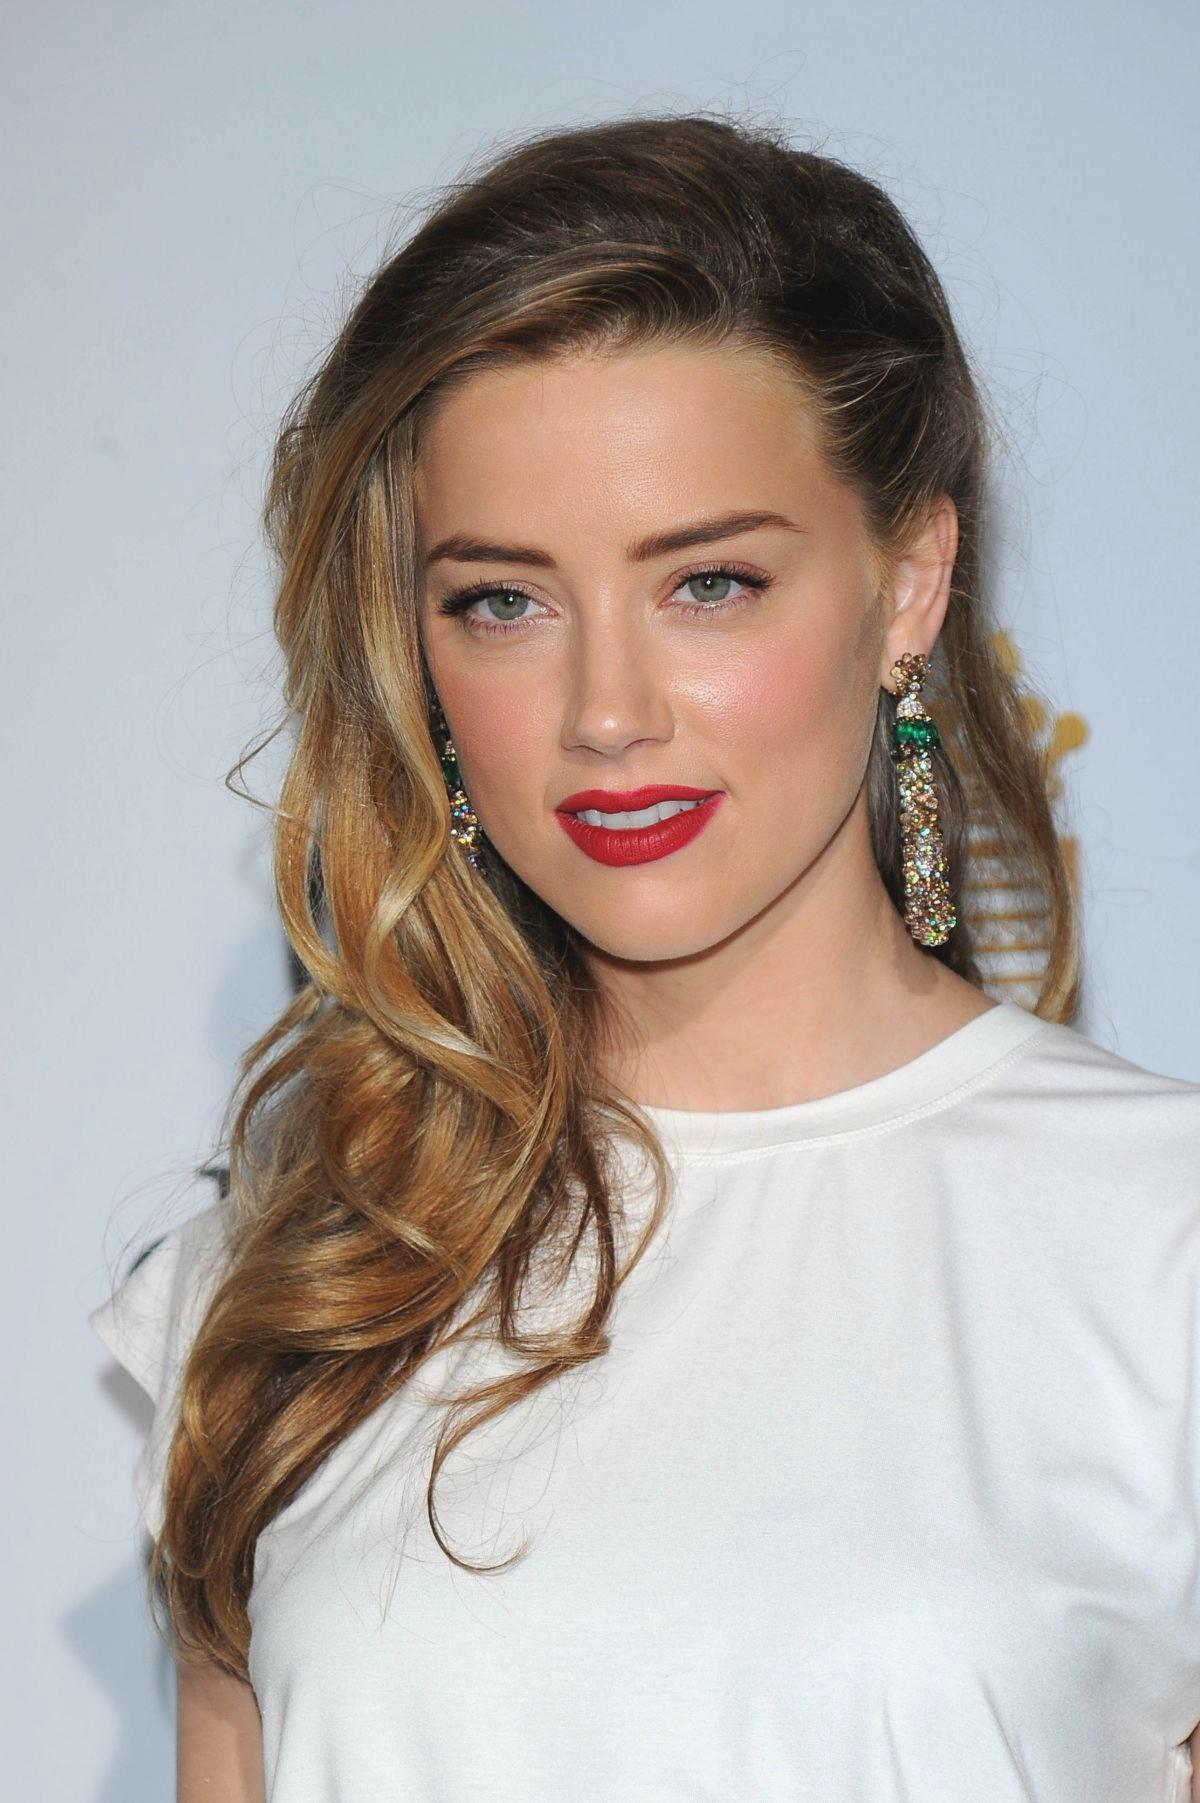 Amber Heard Wallpaper Hd Download